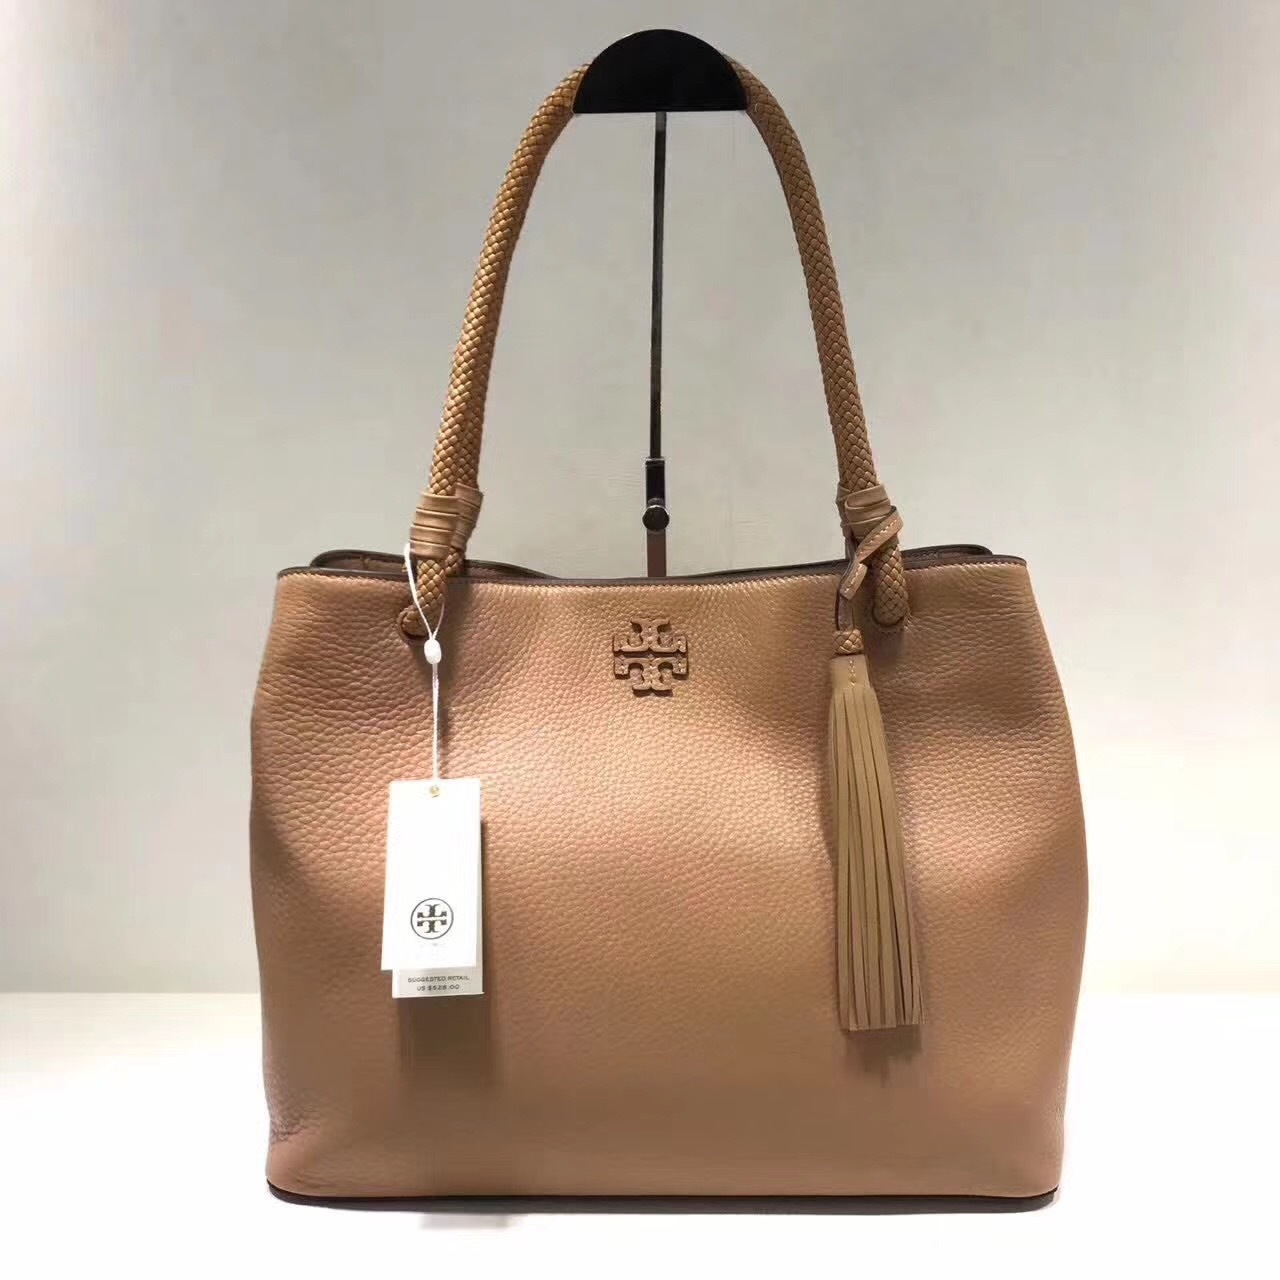 79bbeb7c287 Img 0423. Img 0423. Authentic Tory Burch Taylor Triple-compartment Tote. Authentic  Tory Burch Taylor Triple-compartment Tote